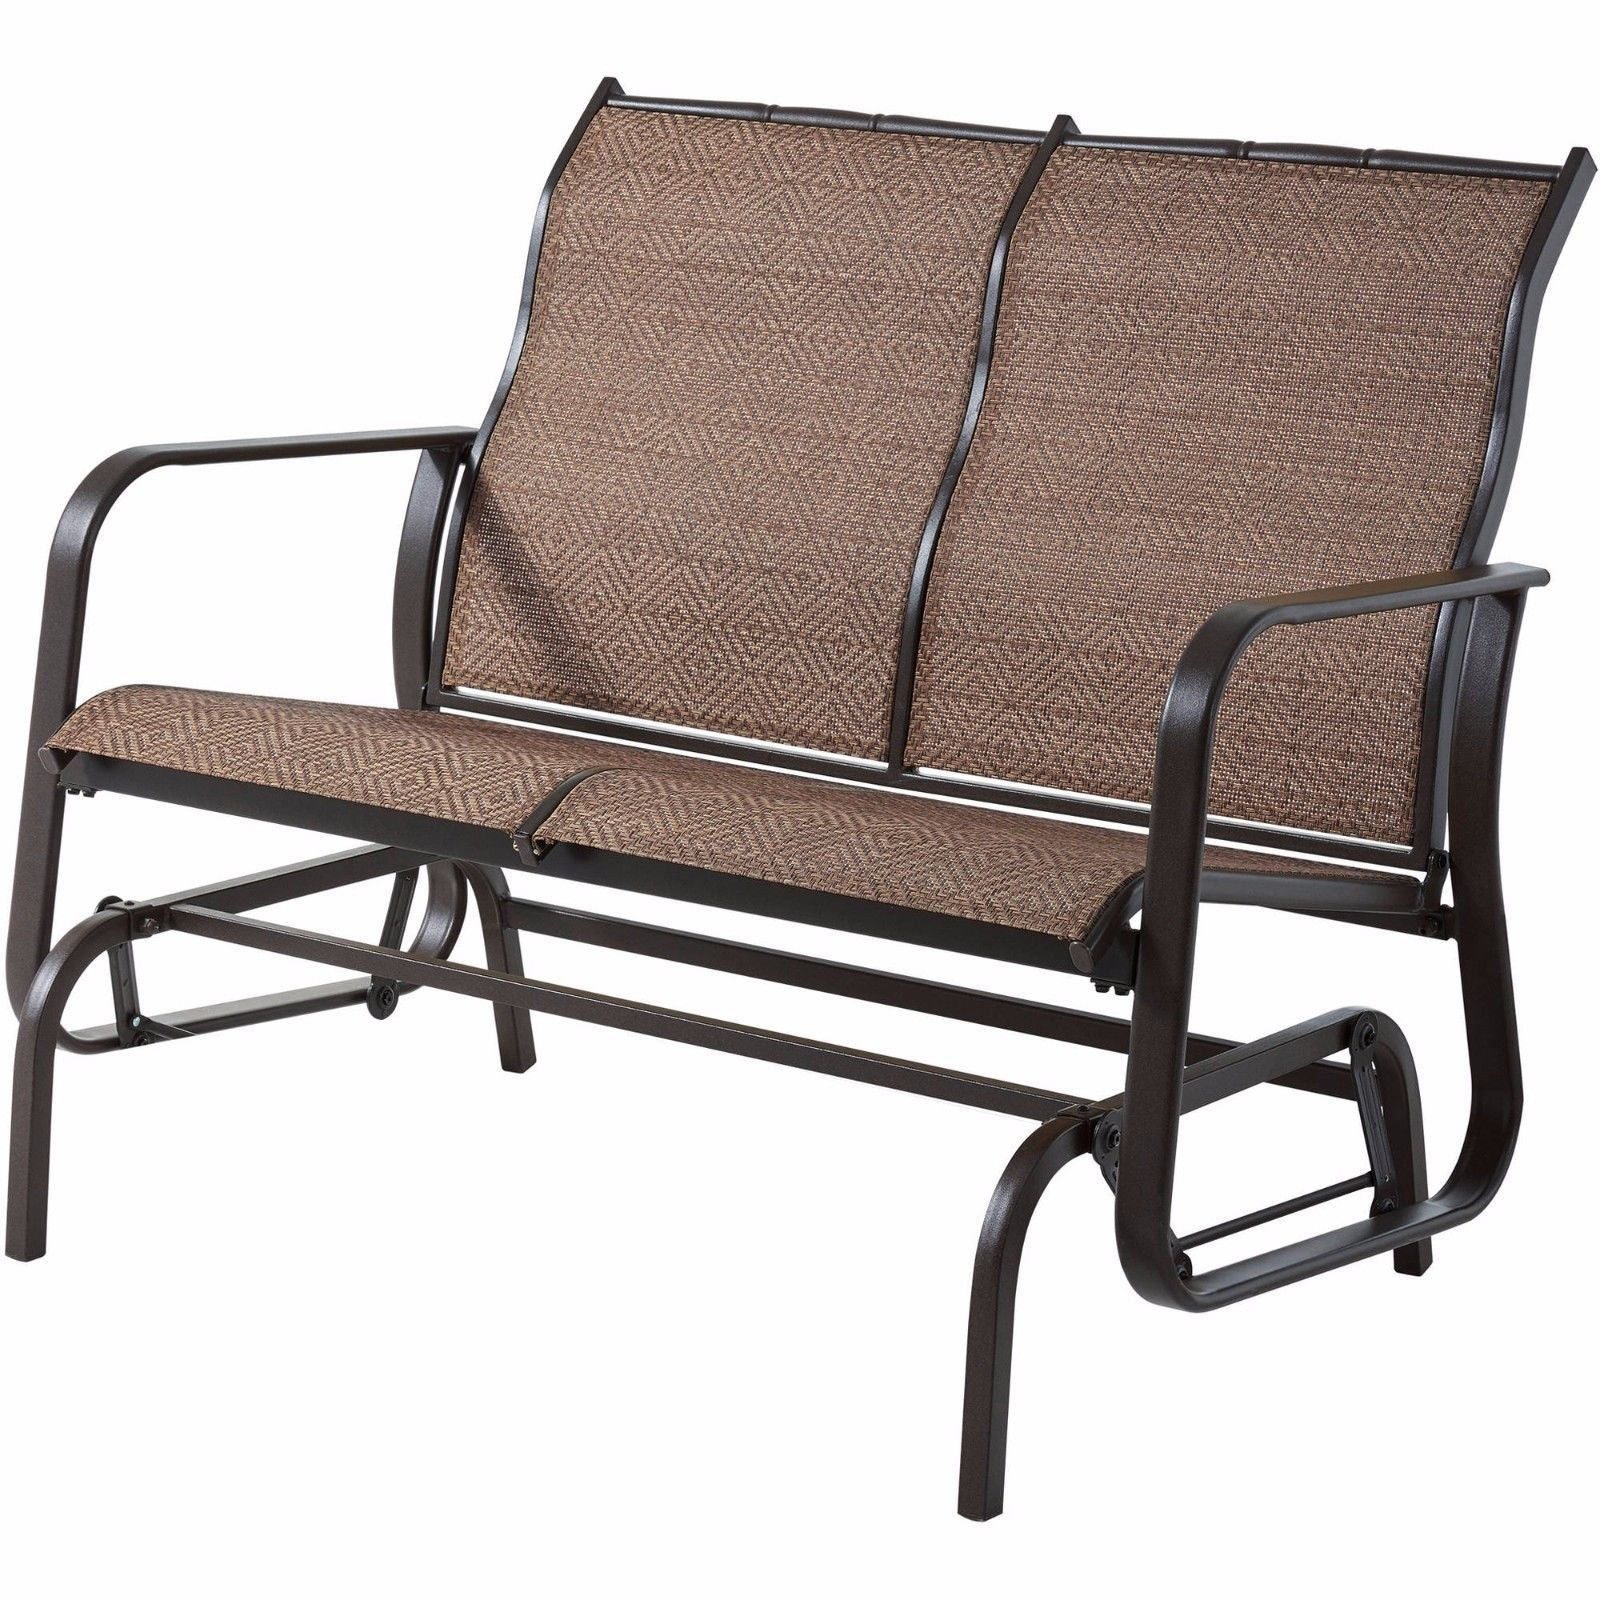 Outdoor Patio Loveseat Glider Brown 2 Seat Sling Furniture Pool Patio Garden Furniture Sets